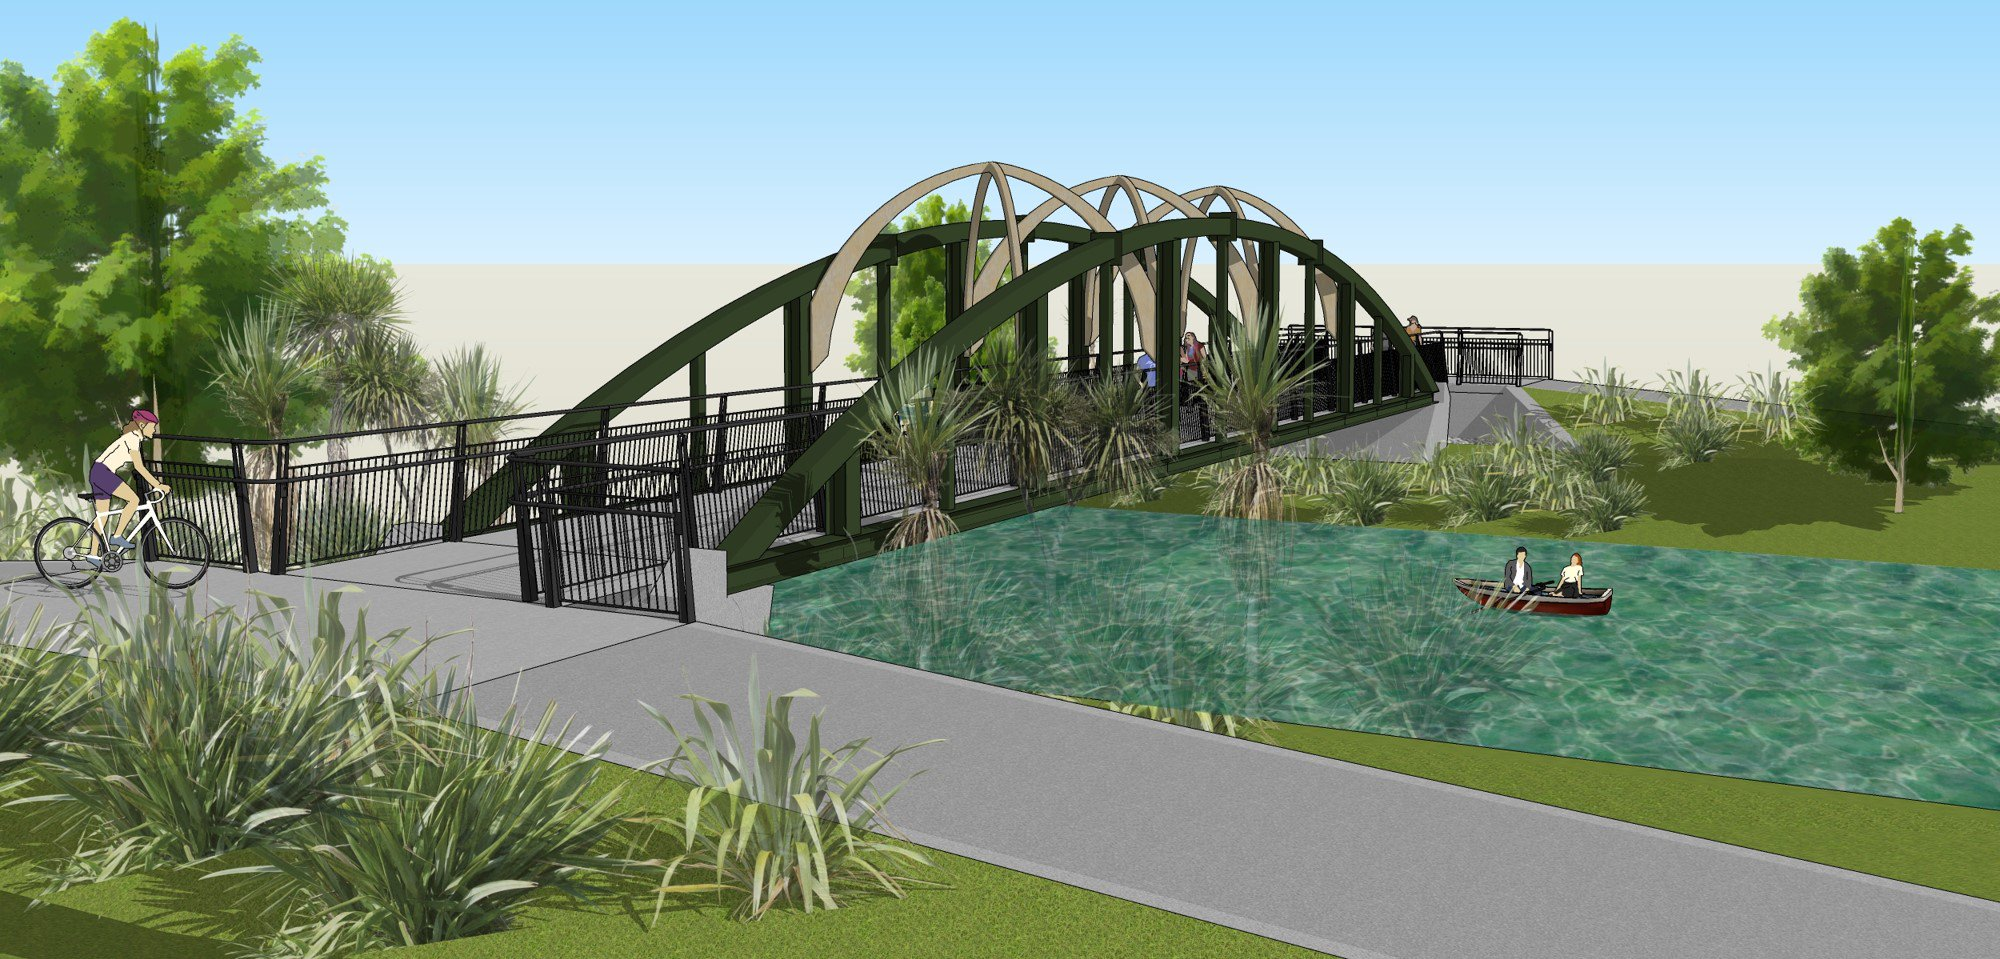 'Snell Bridge concept 1